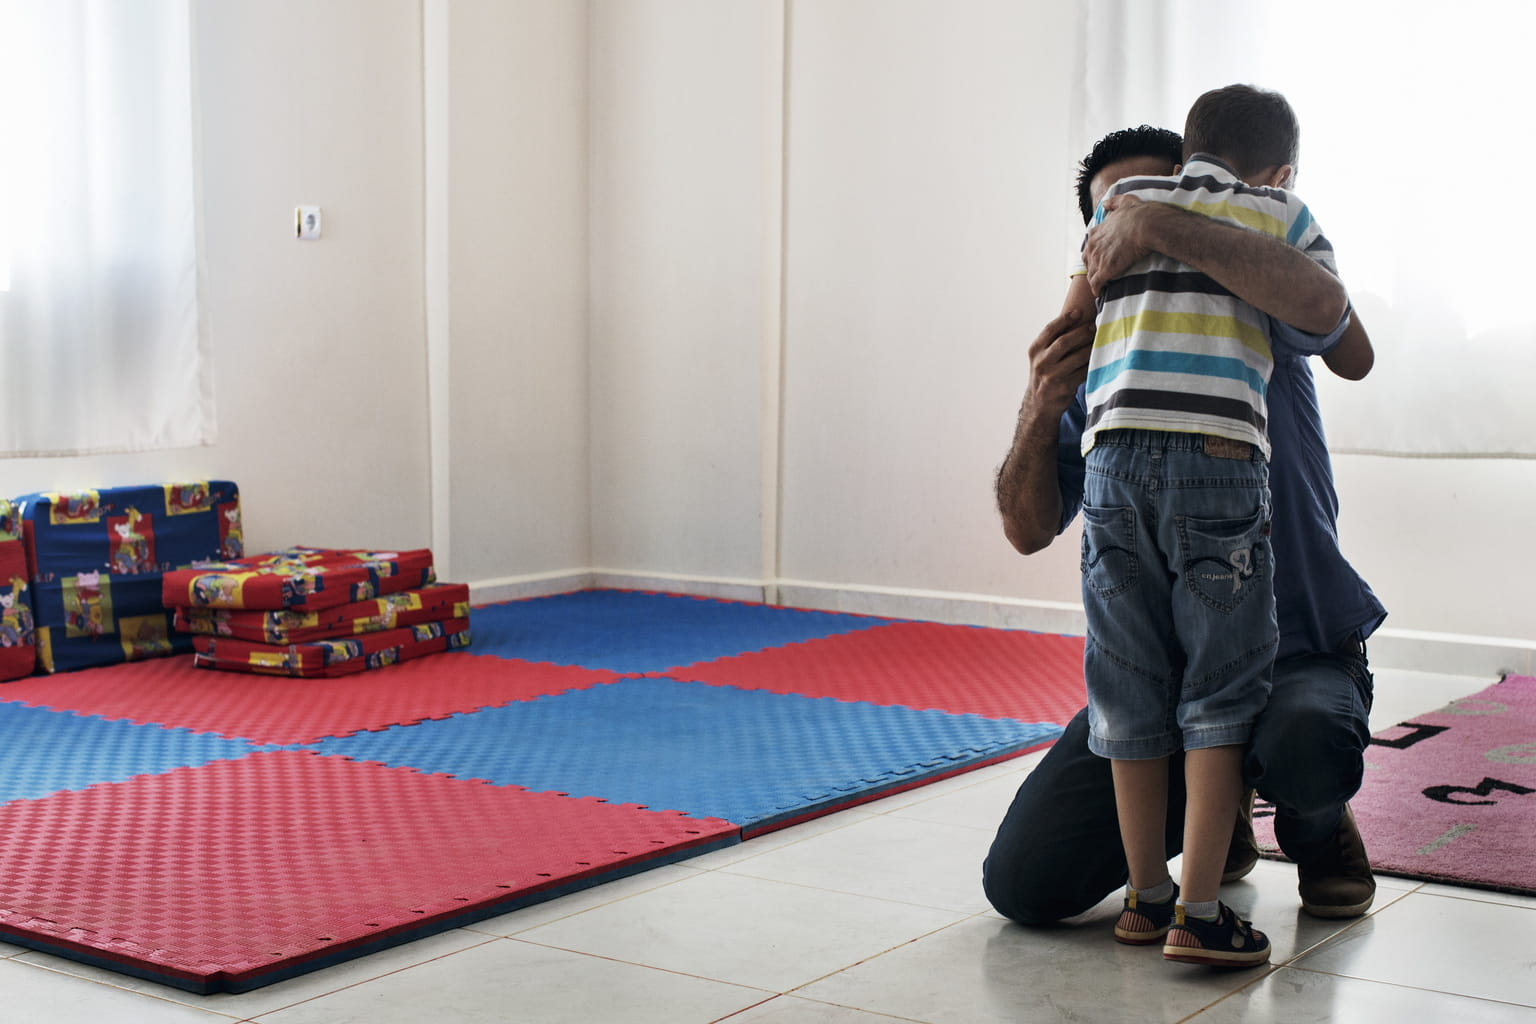 September 17, 2015, Reyhanli, Turkey. A therapist hugs an autistic boy during a therapy session.